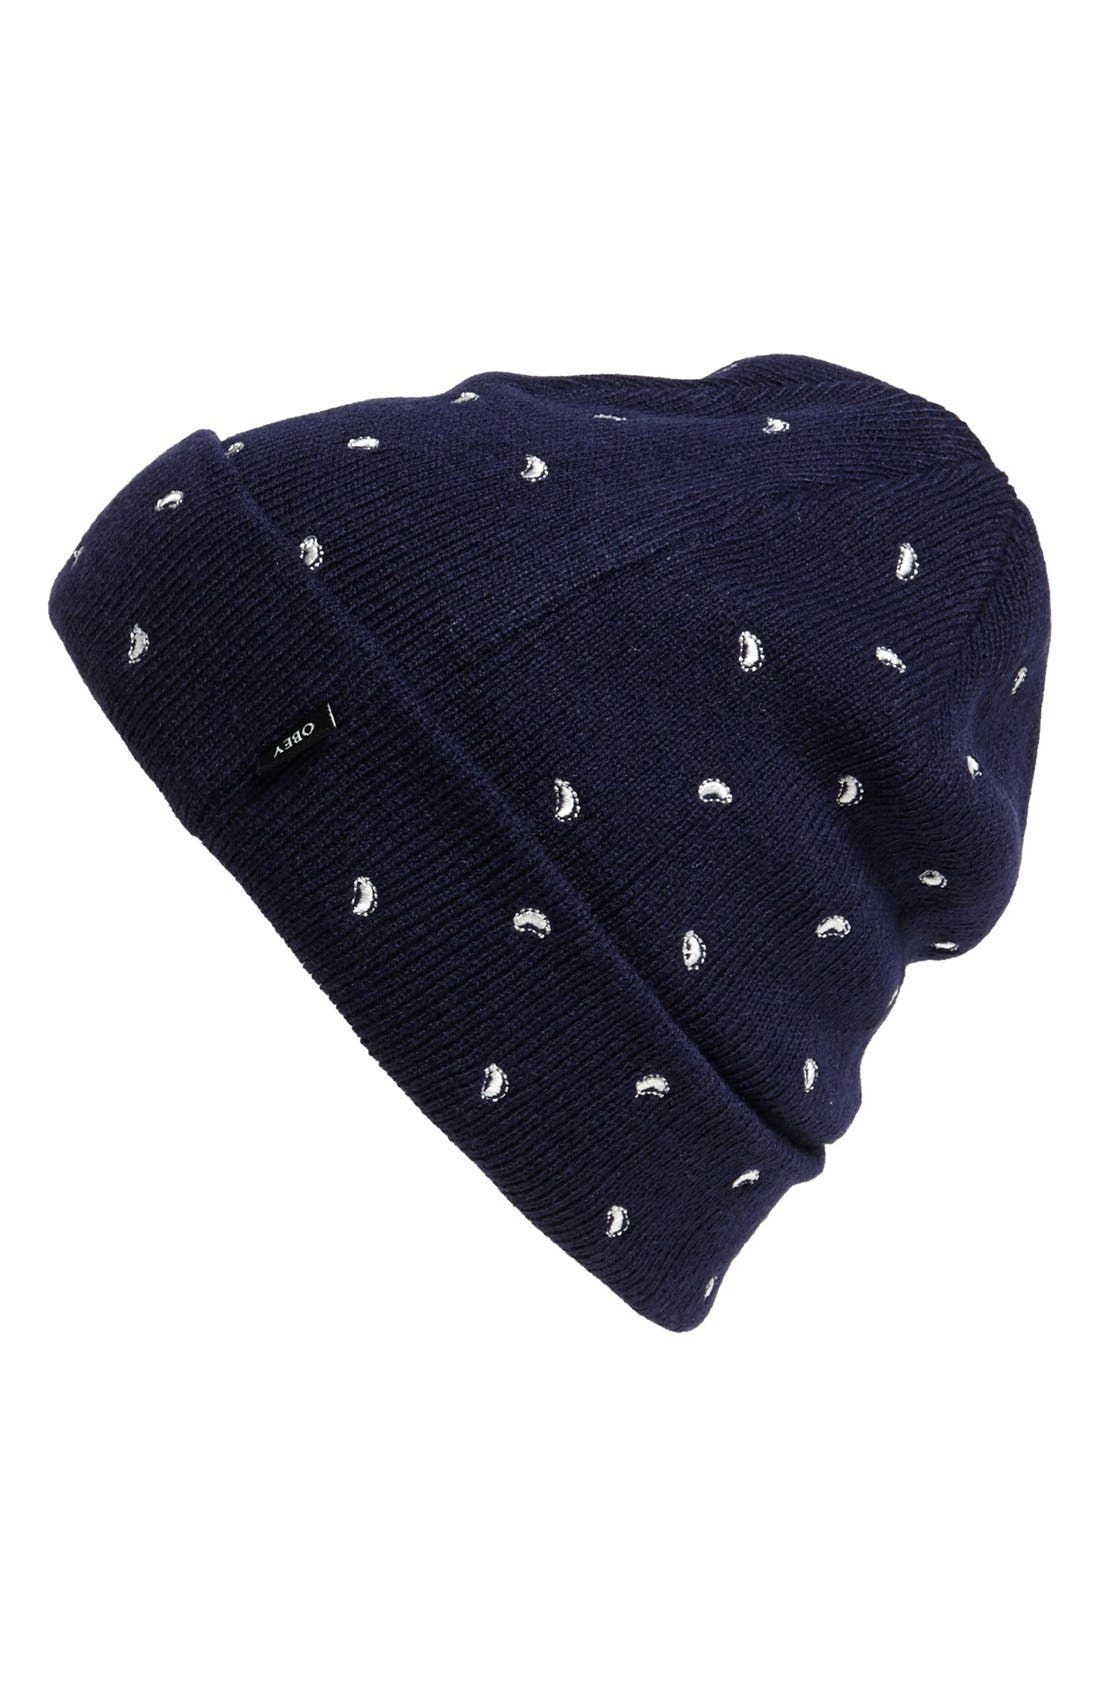 Alternate Image 1 Selected - Obey 'Dynasty' Knit Cap